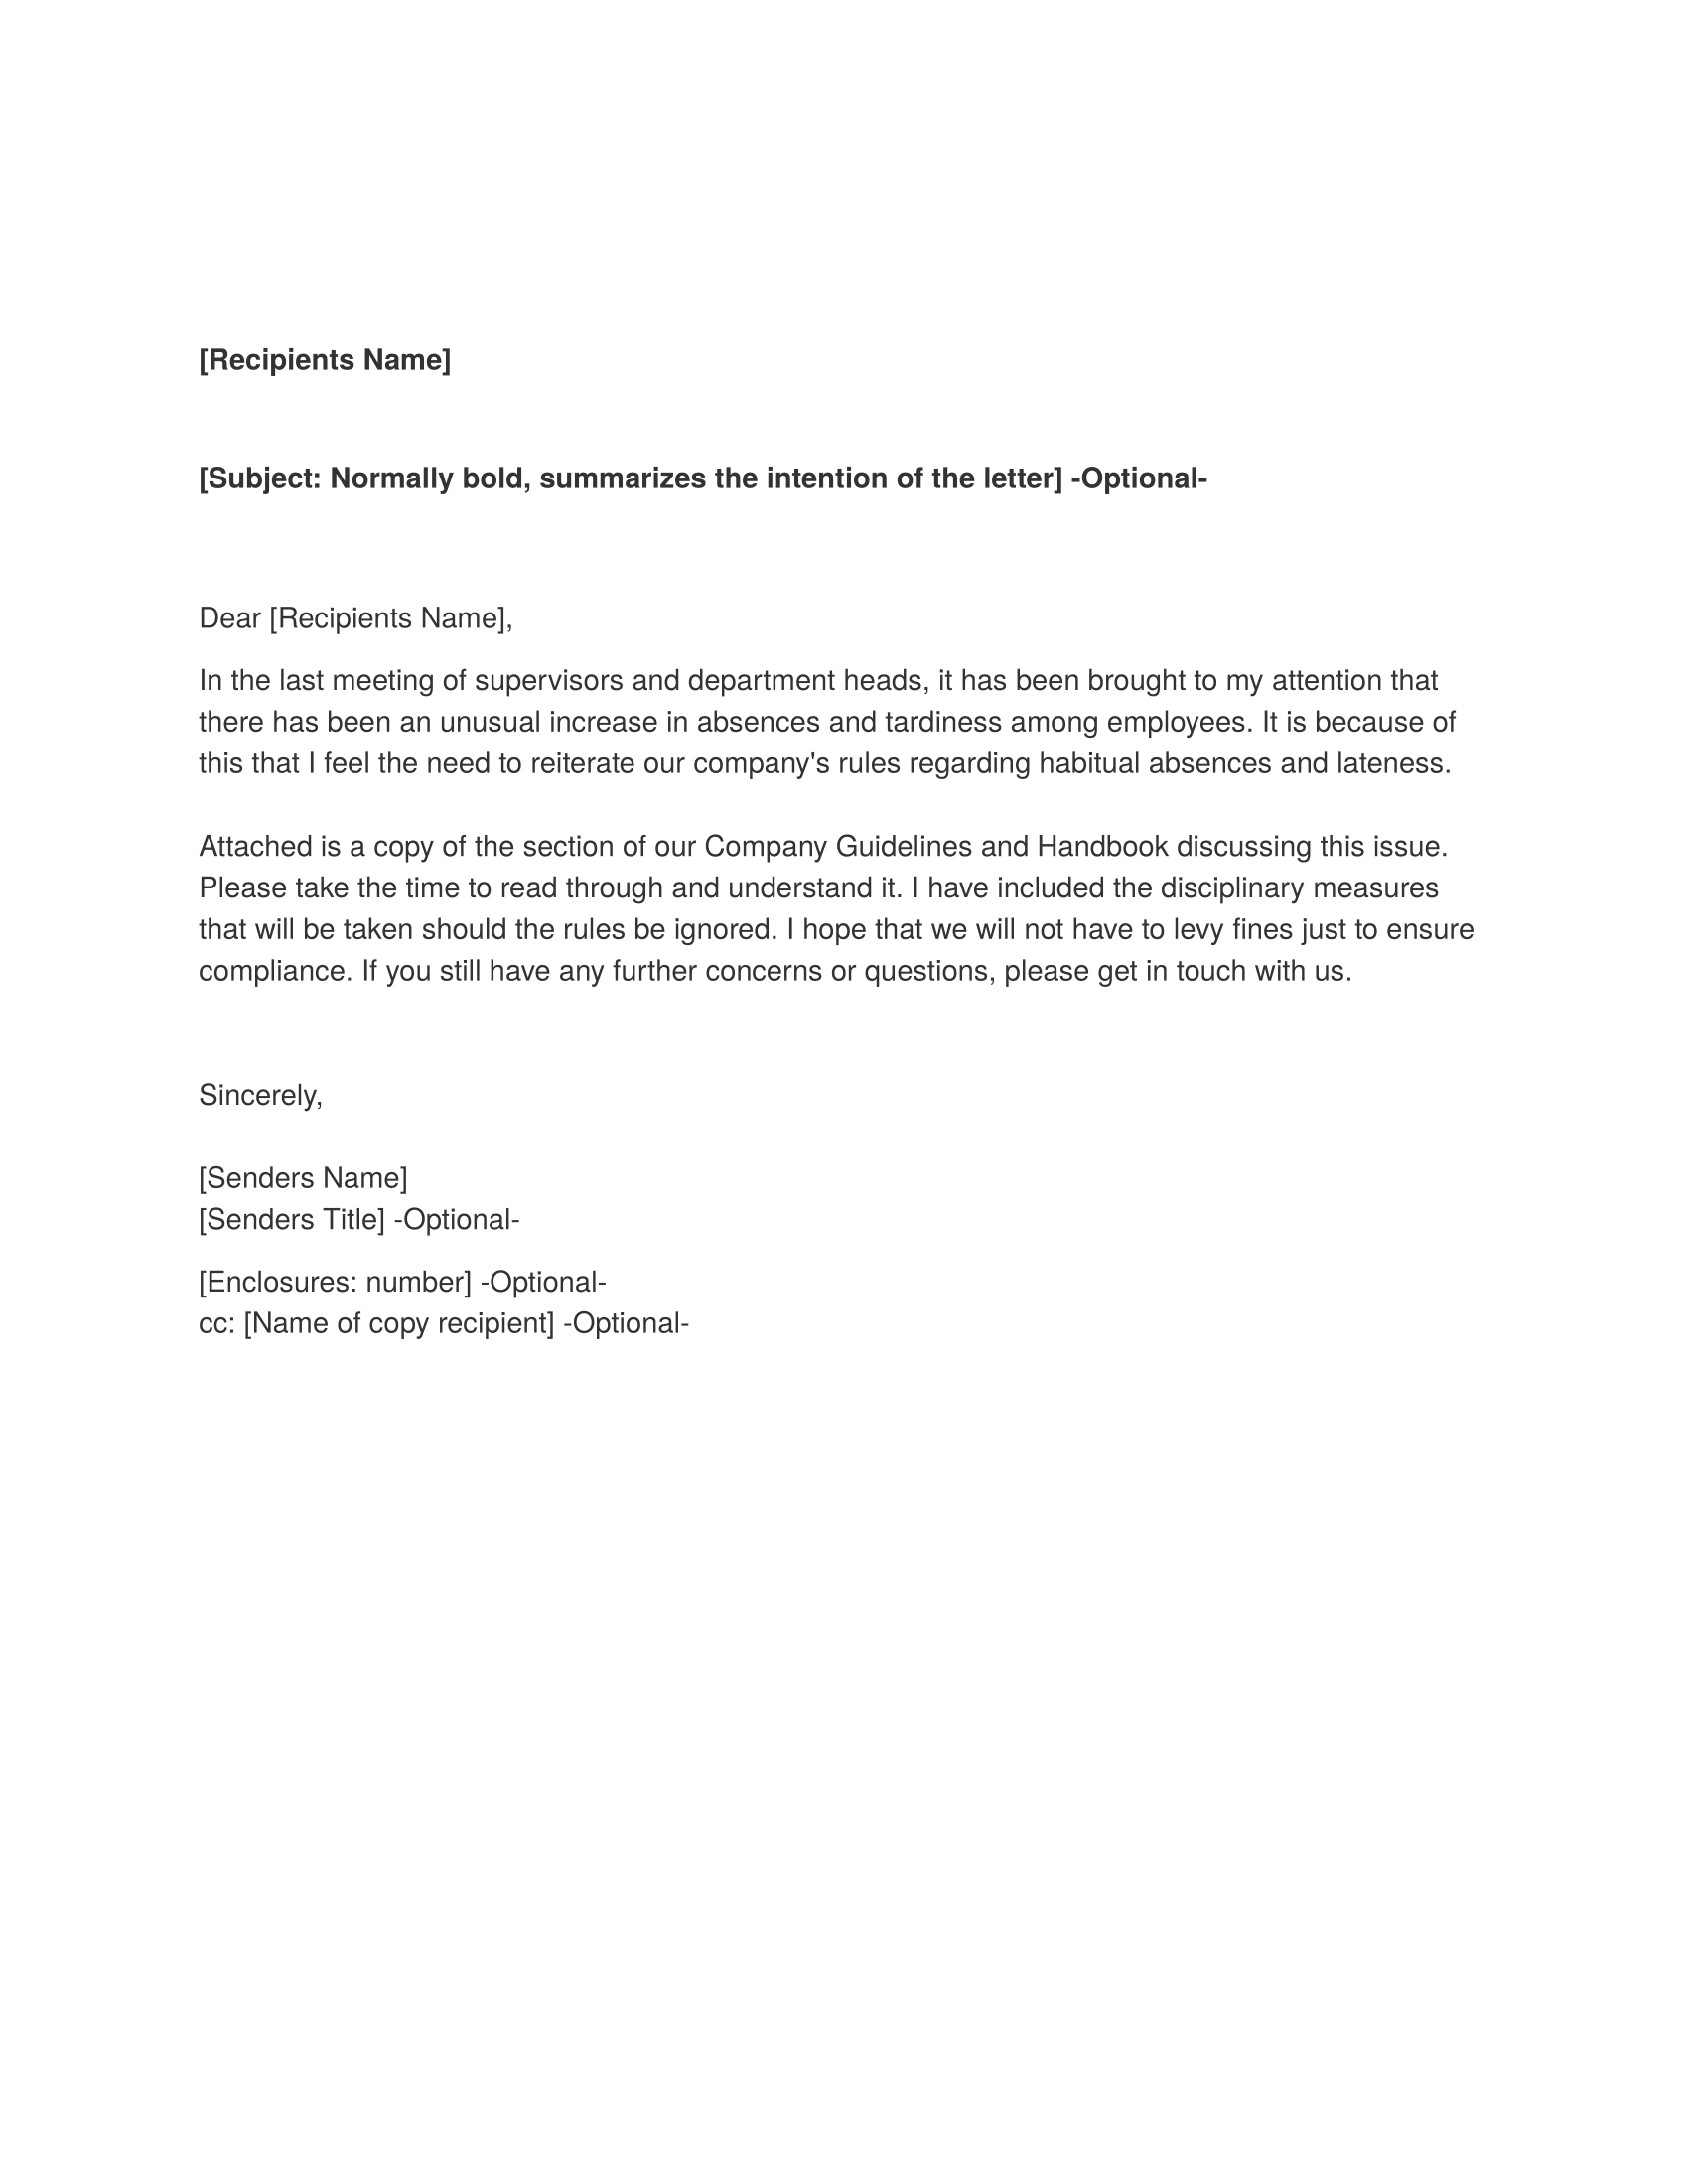 Memorandum - Download FREE Business Letter Templates and Forms